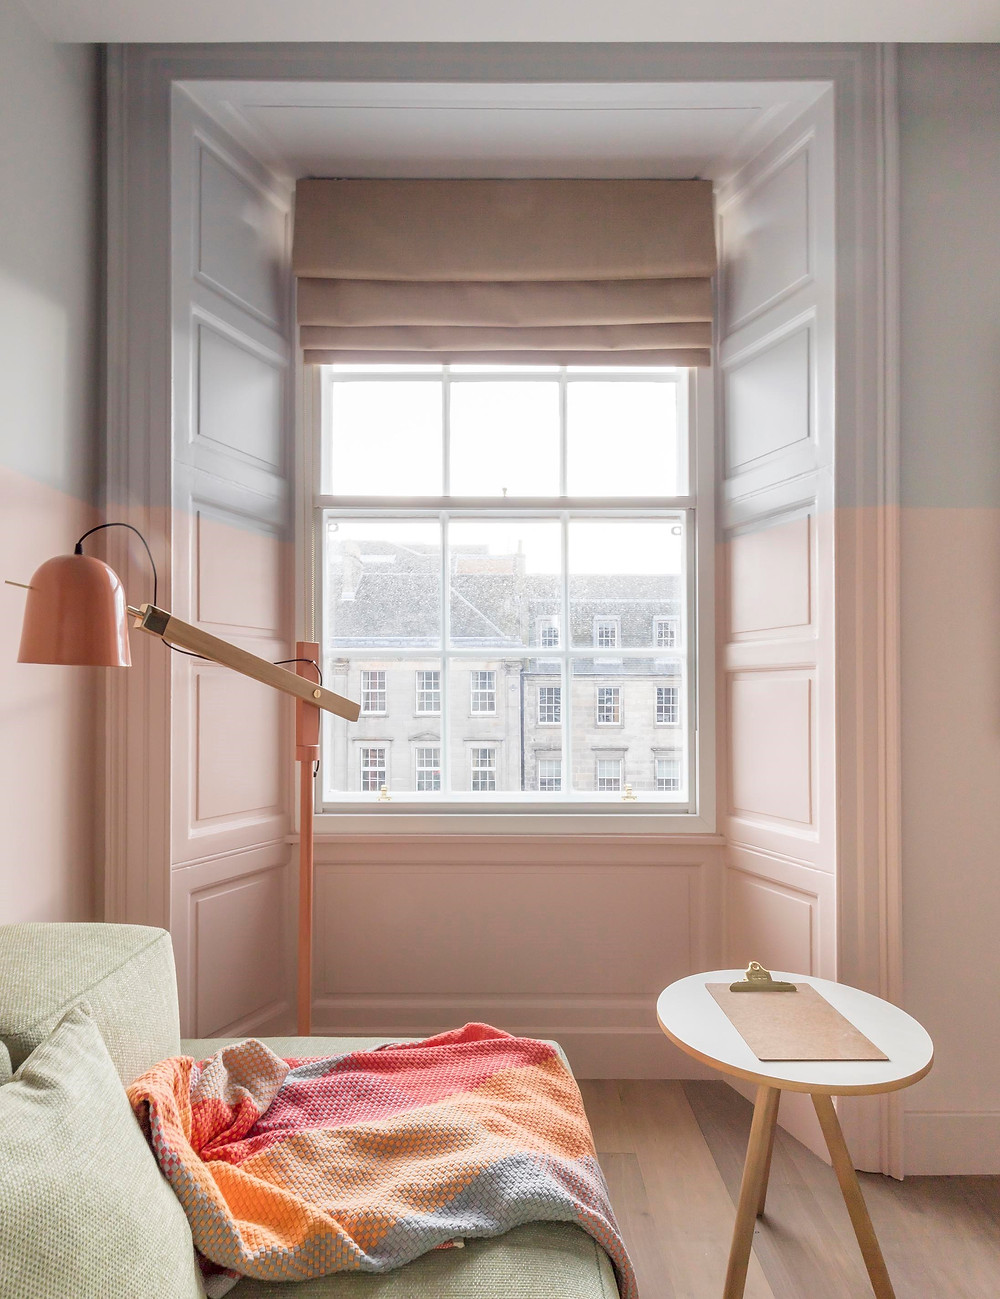 EDEN LOCKE HOTEL interior decor bedroom with pastel colours in pink and blue